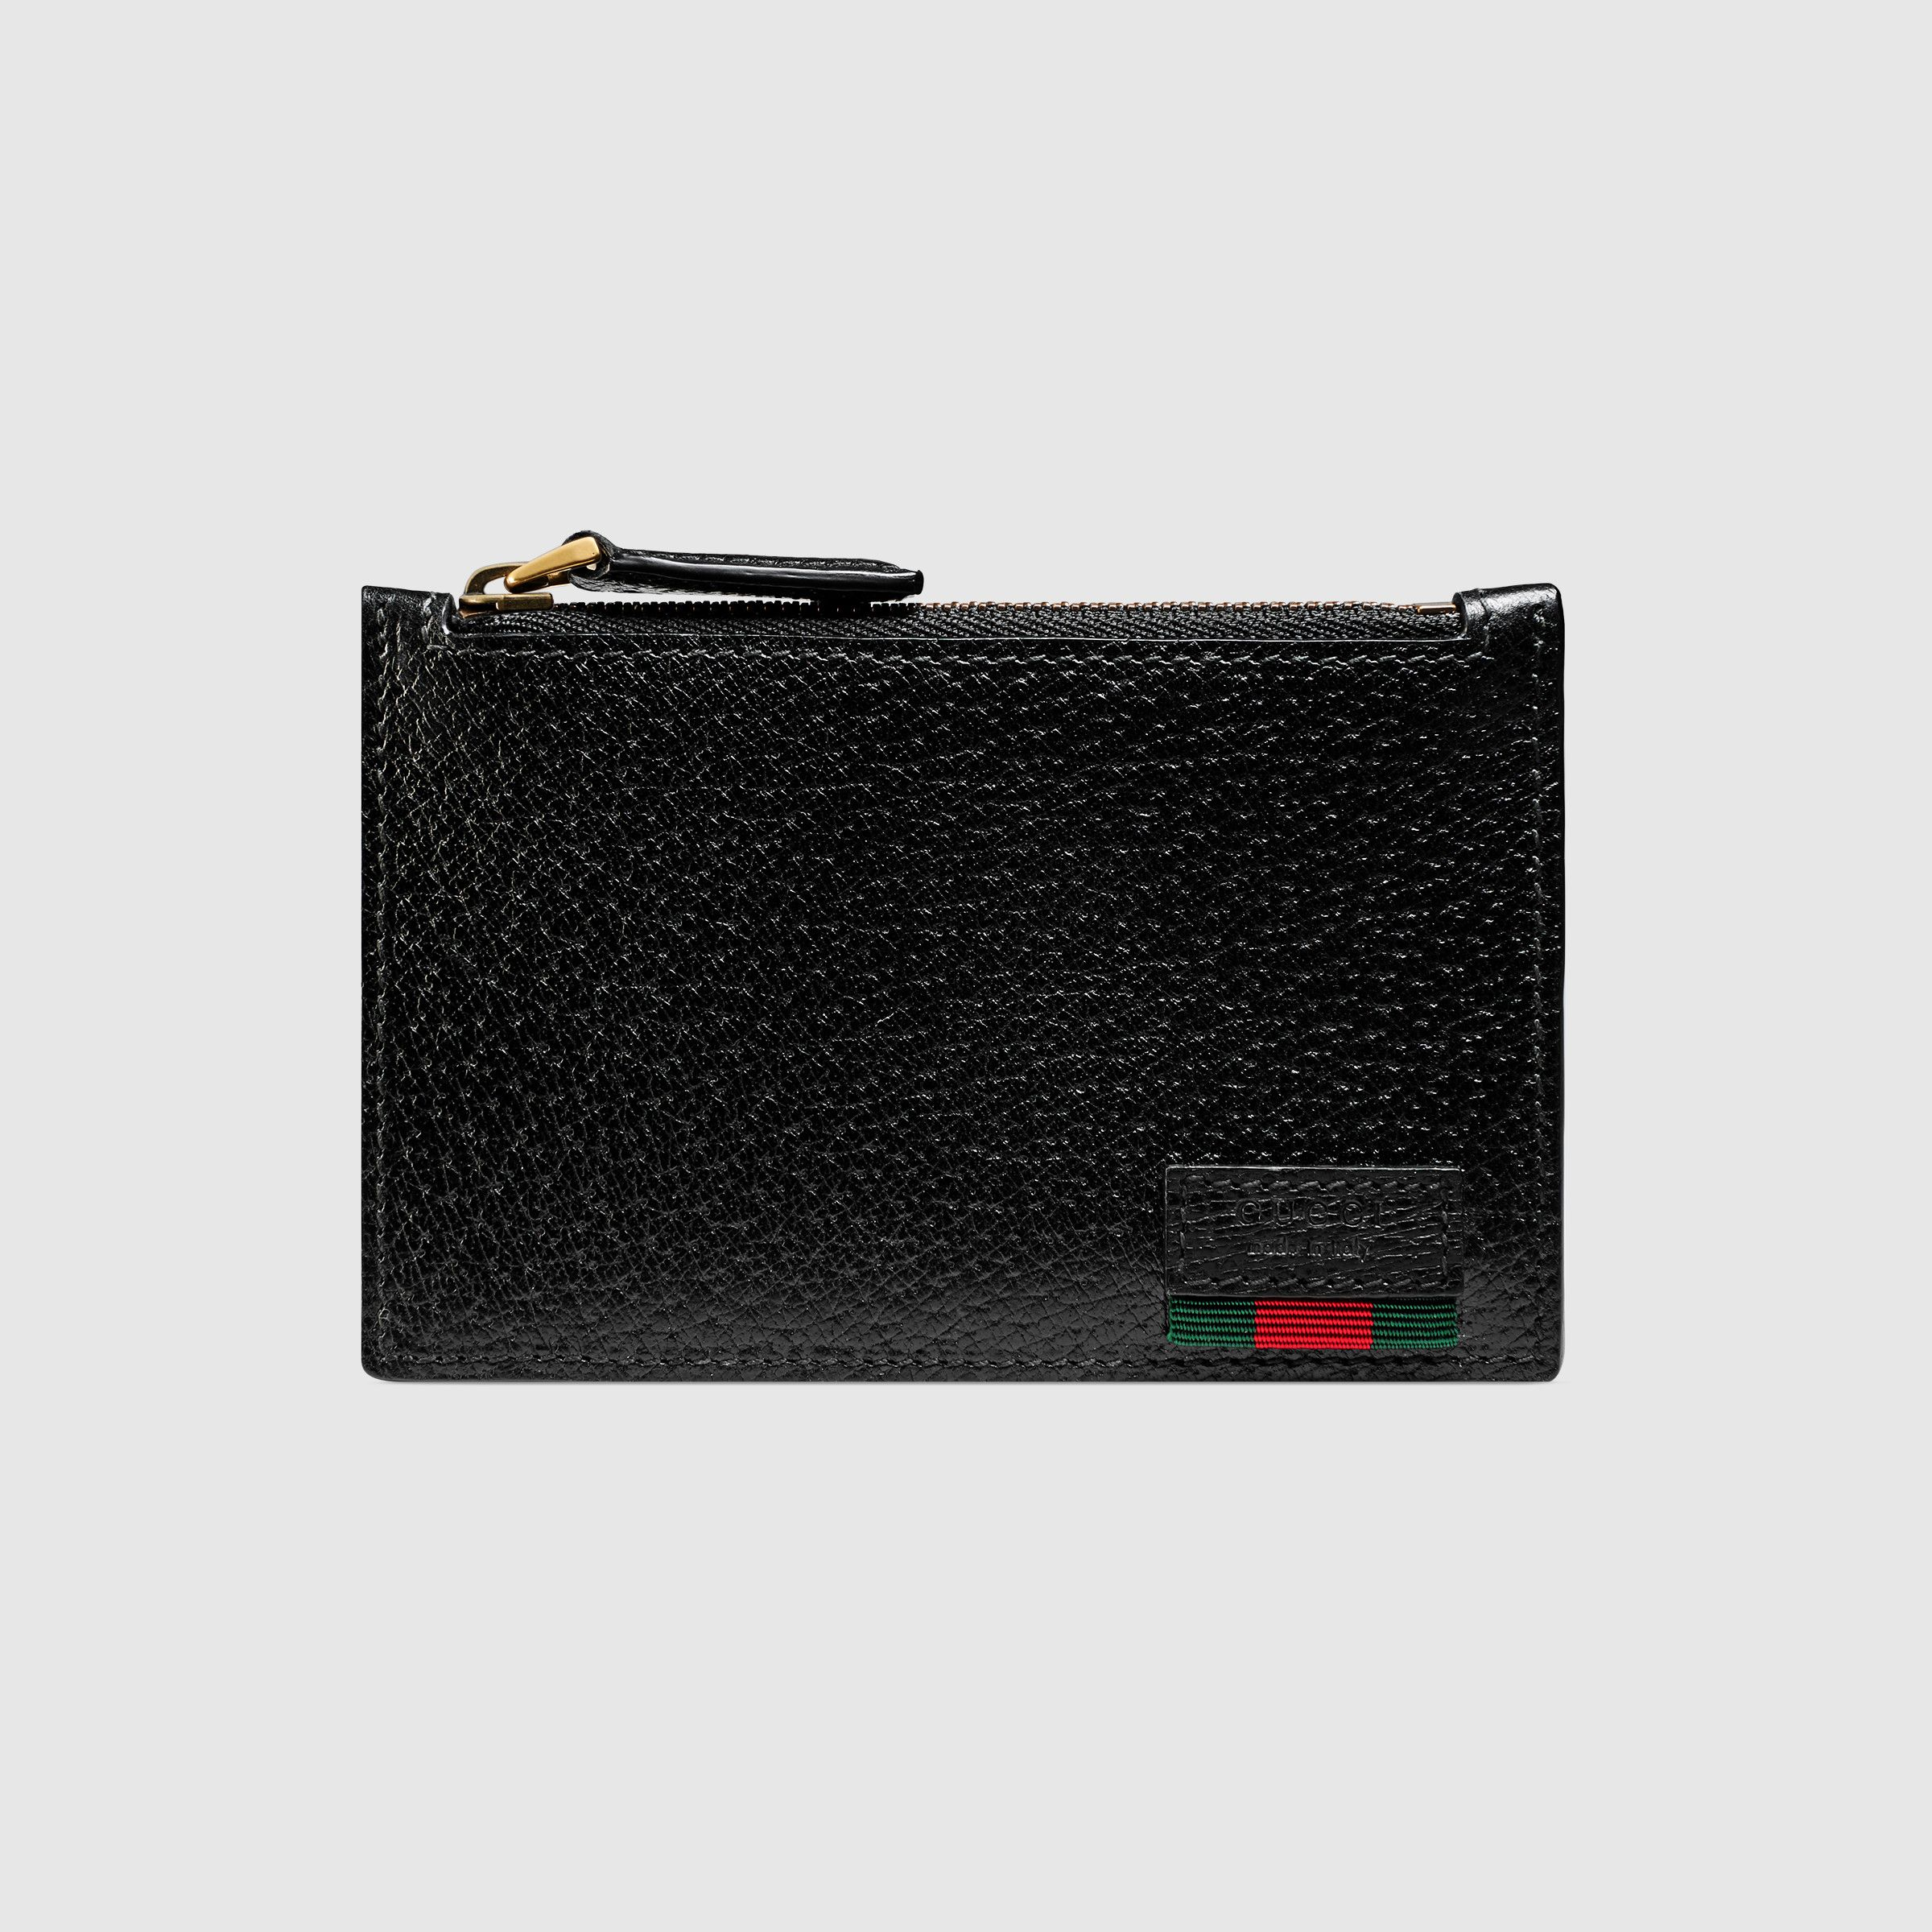 6f51924478d Gucci Leather card case with Web